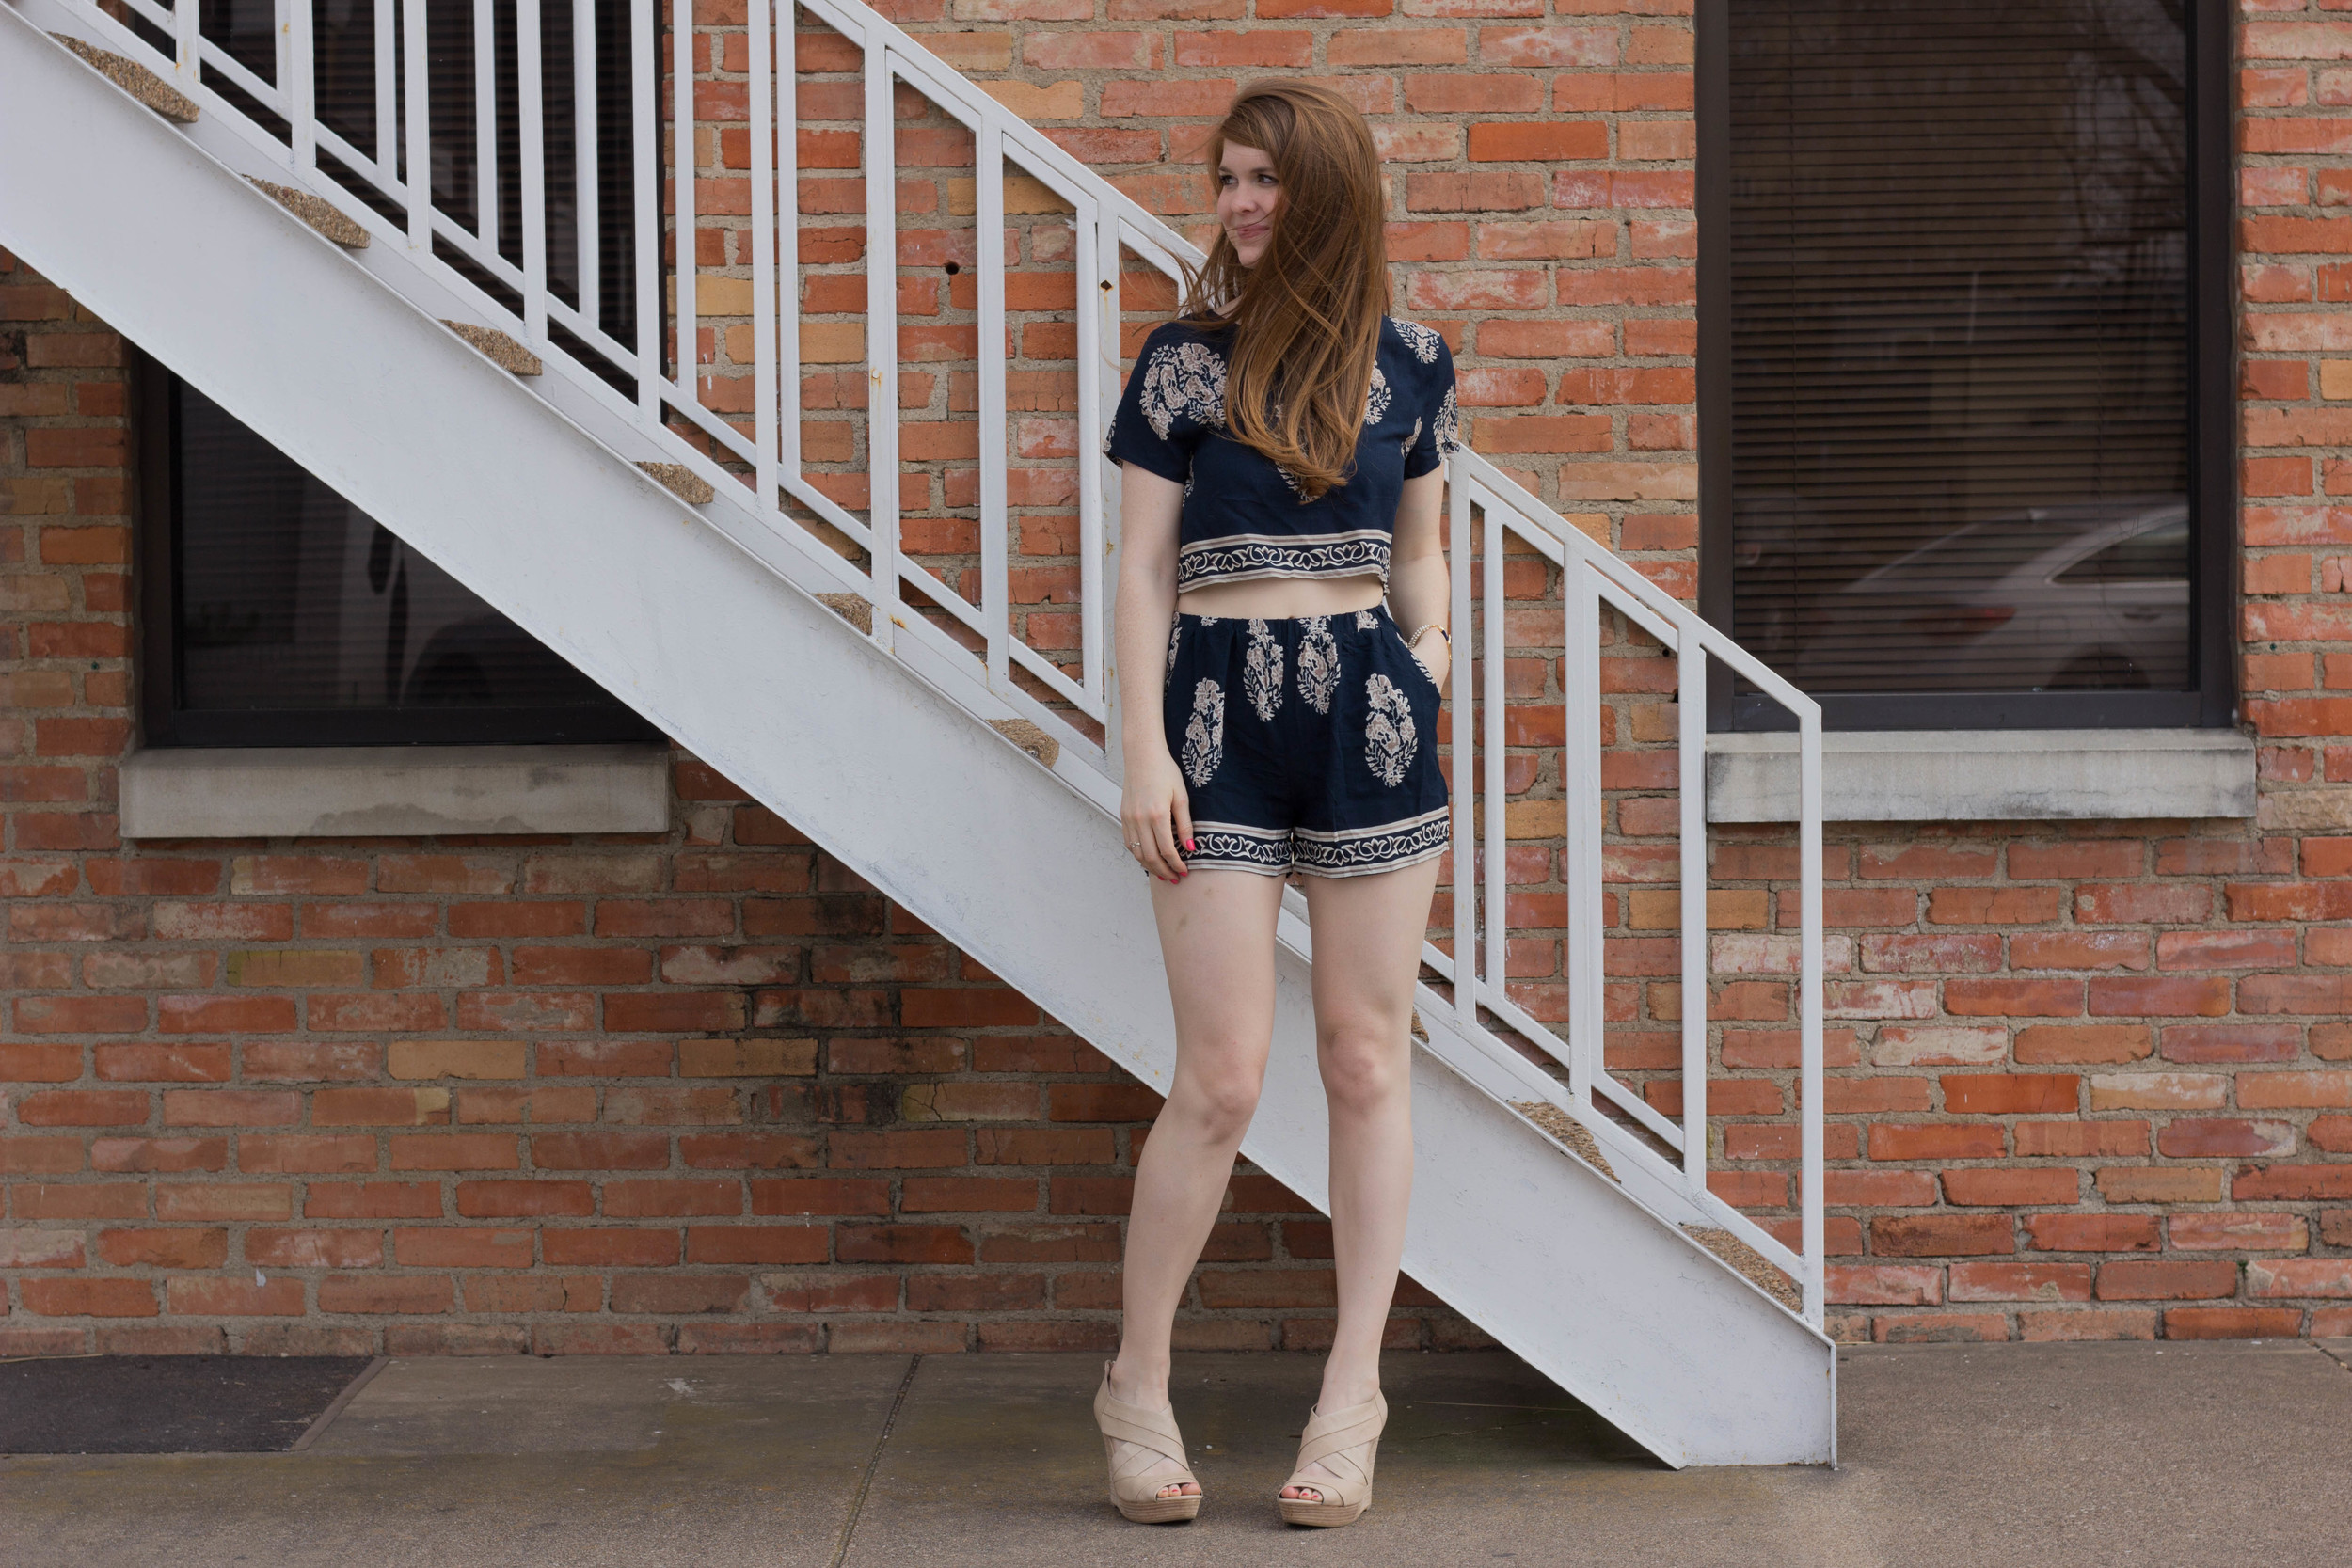 latiste by amy navy floral paisley two piece set, shopriffraff, seychelles wedges